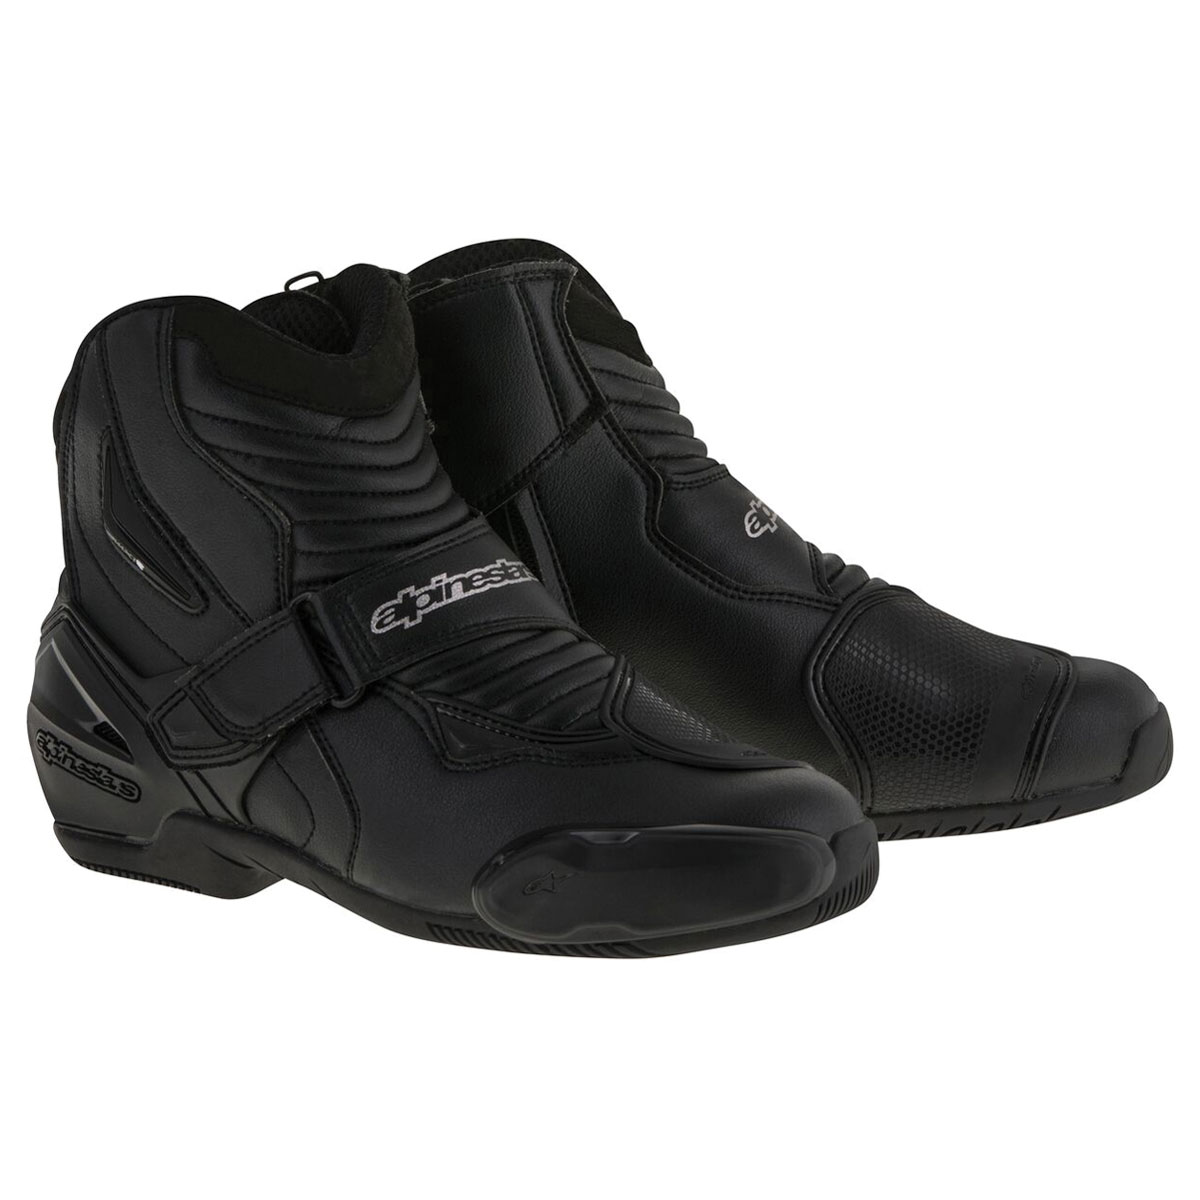 Alpinestars Men's SMX-1 R Vented Black Boots